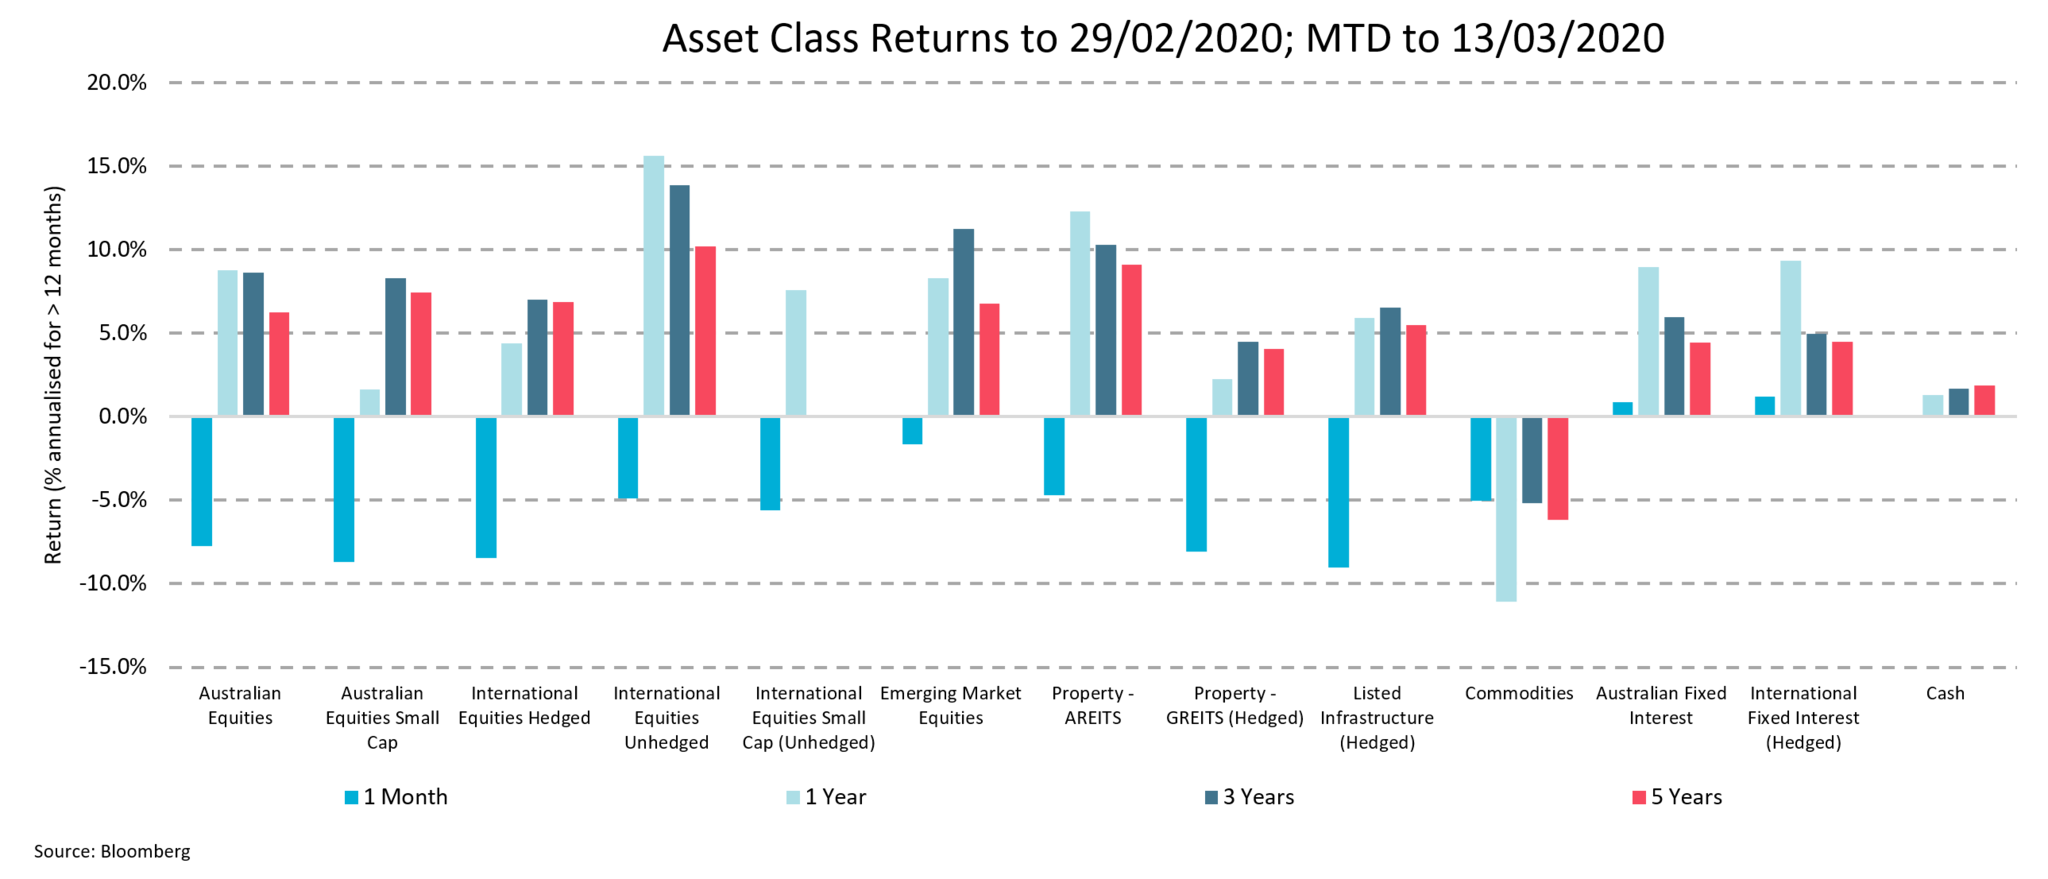 This chart shows the relative change in the major asset classes. All asset classes, with the exception of Cash, have suffered falls in the range between -23% and -0.3% between 29 February and 13 March 2020.